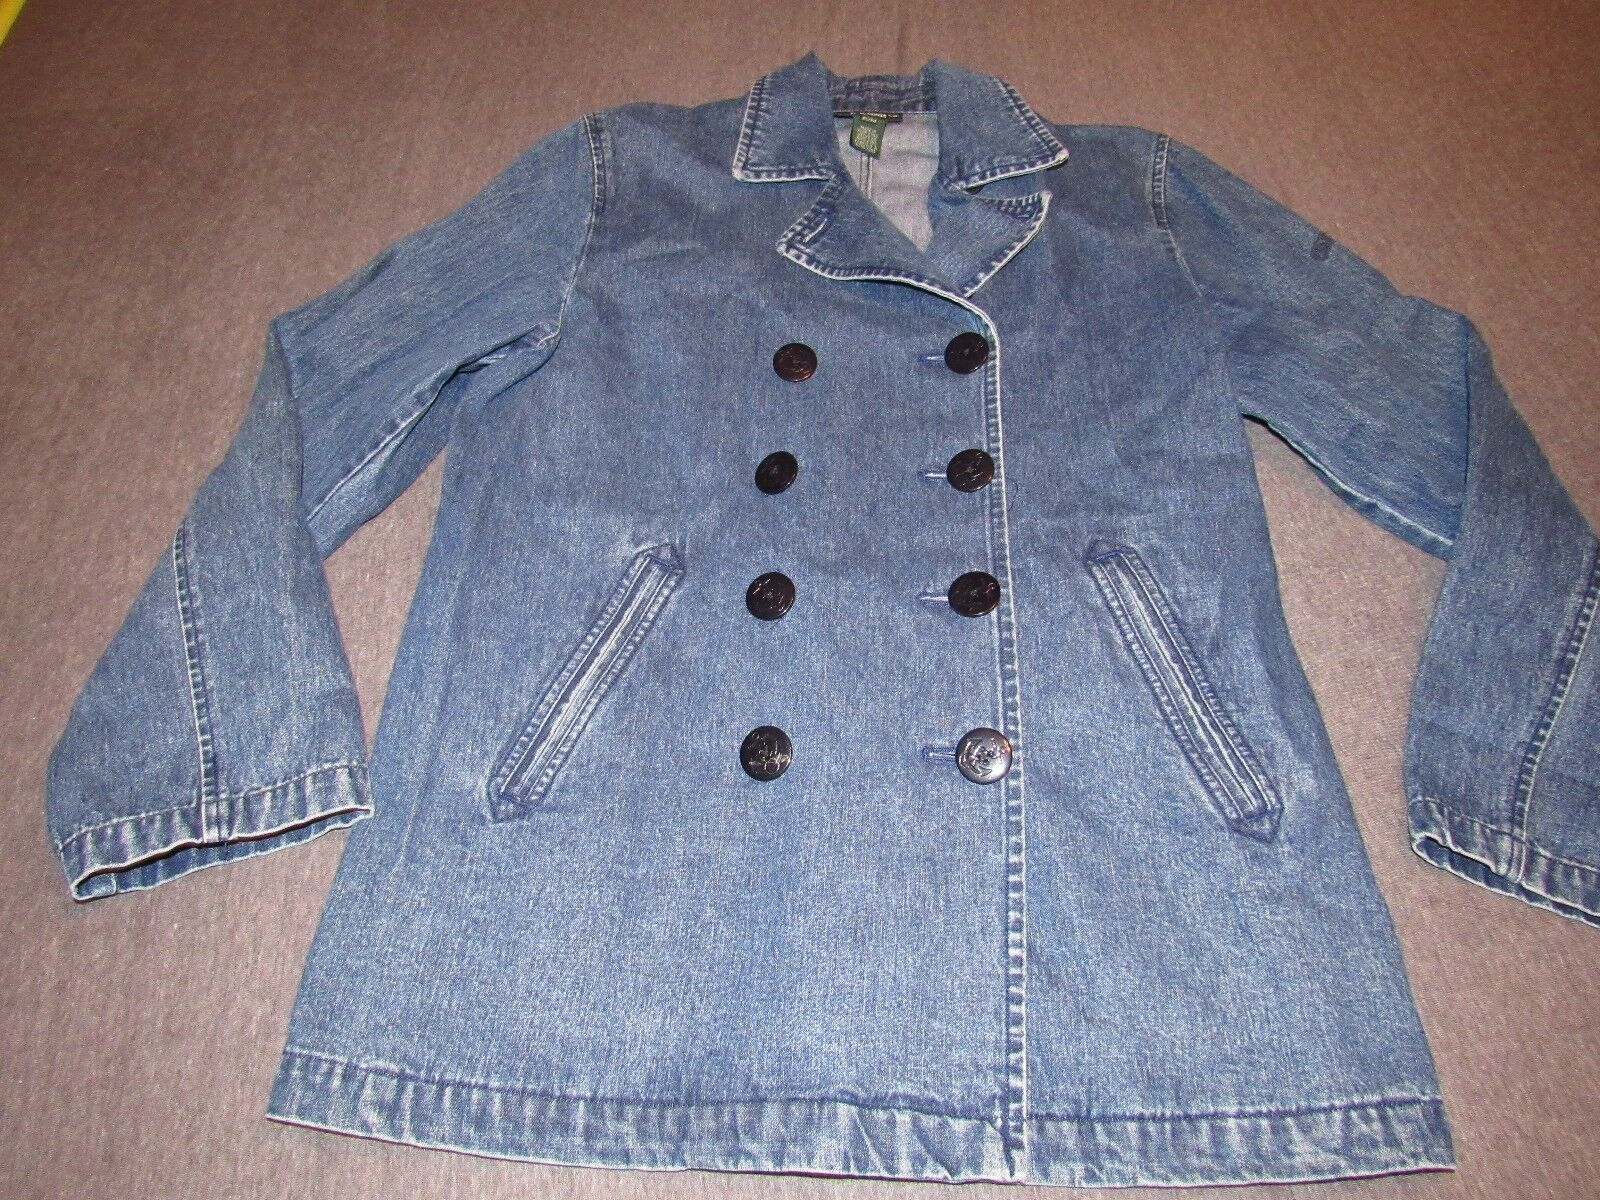 WOMENS LAUREN RALPH LAUREN NAUTICAL DENIM JEAN PEACOAT SIZE PETITE MEDIUM